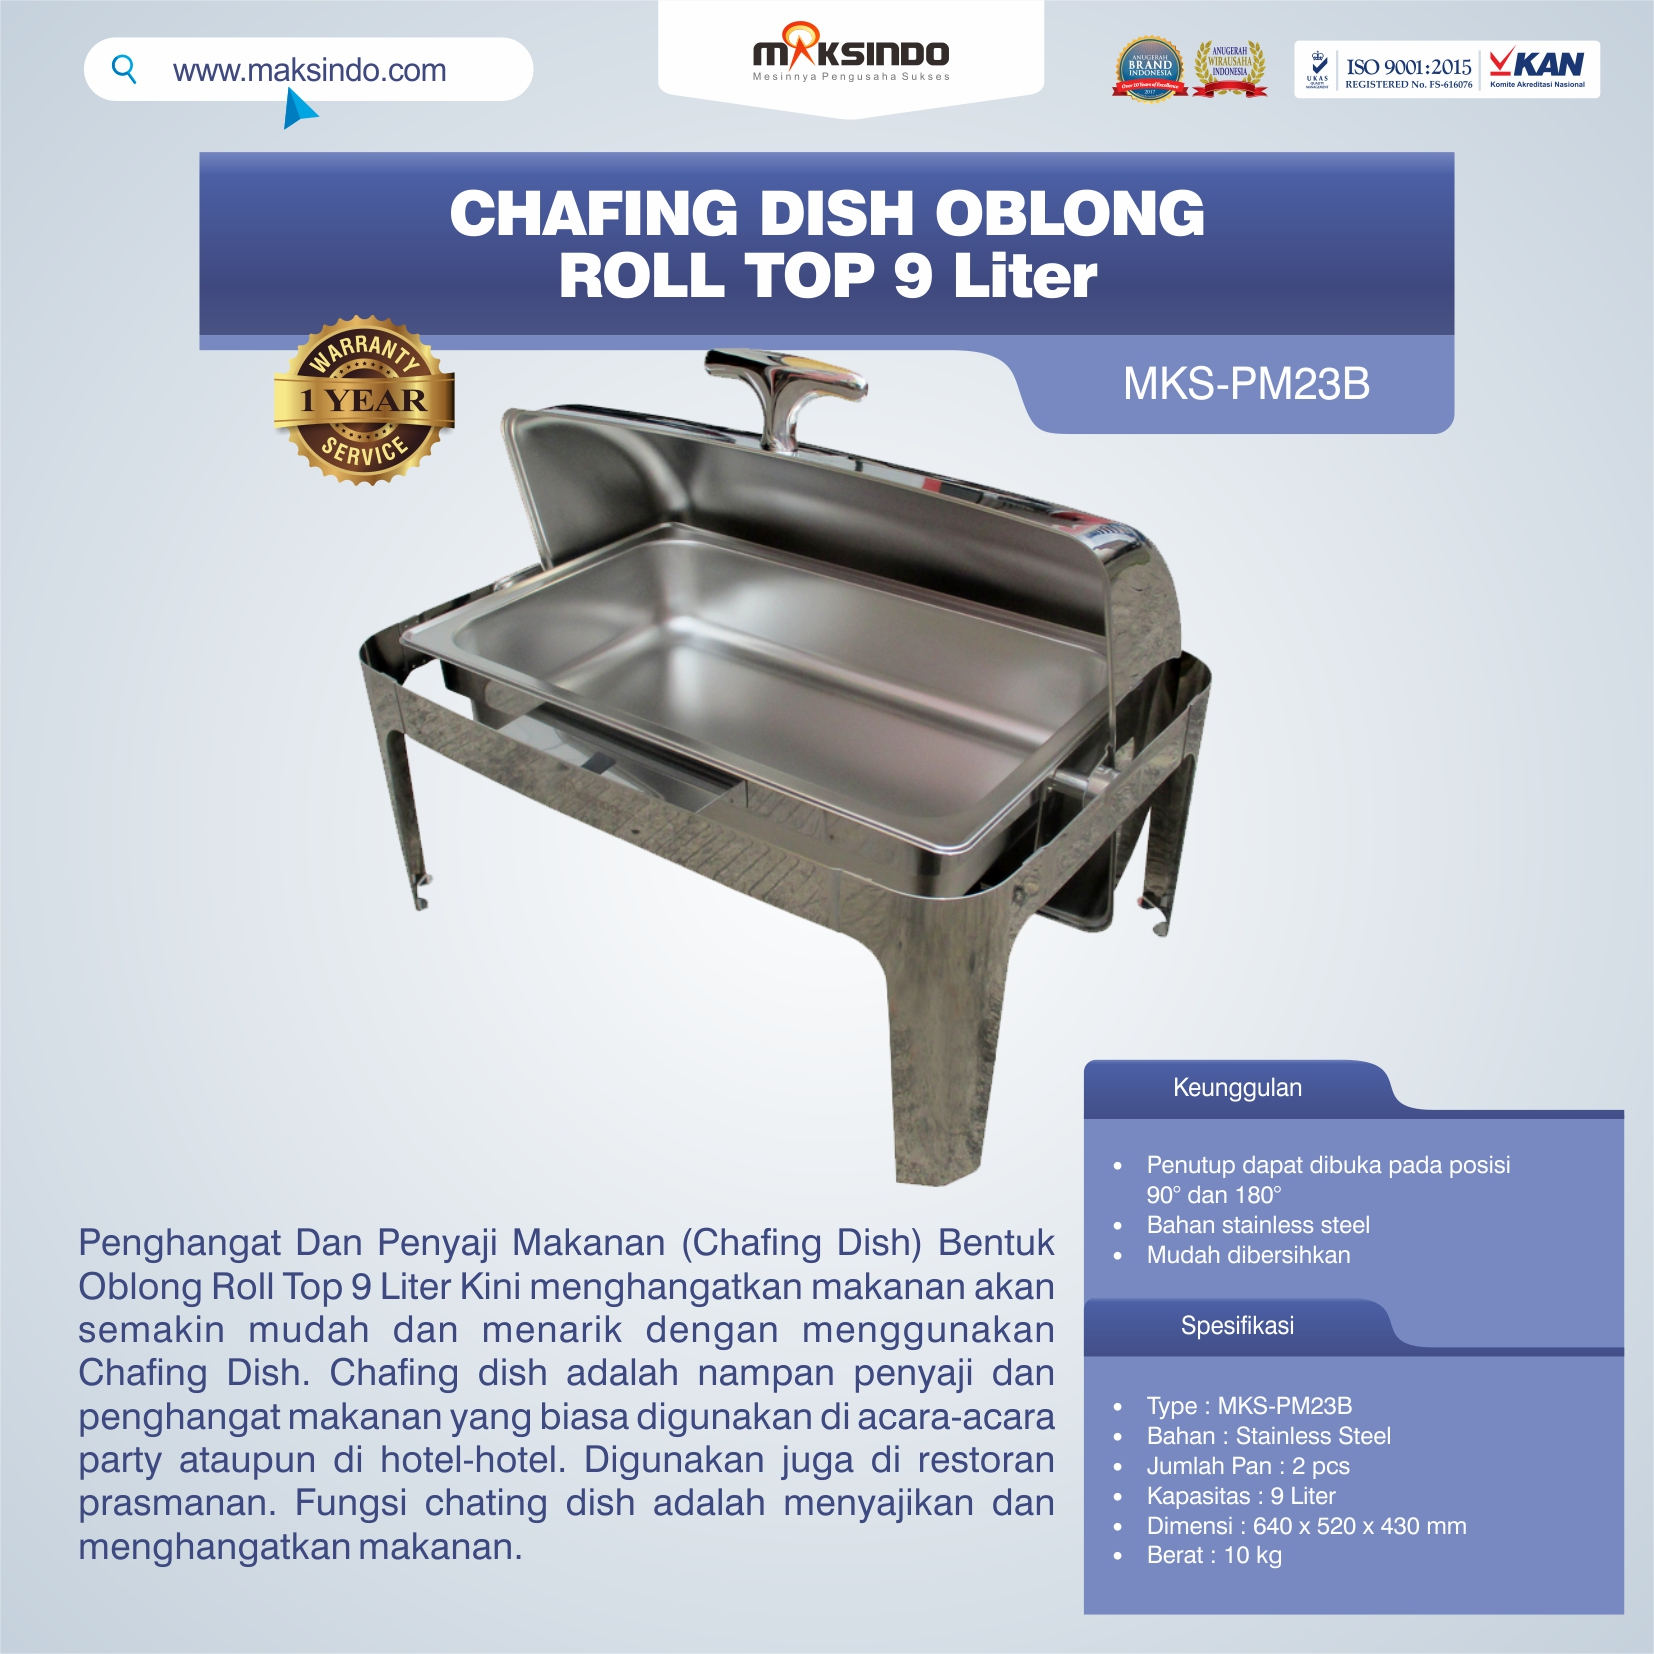 Chafing Dish Oblong Roll Top – 9 Liter